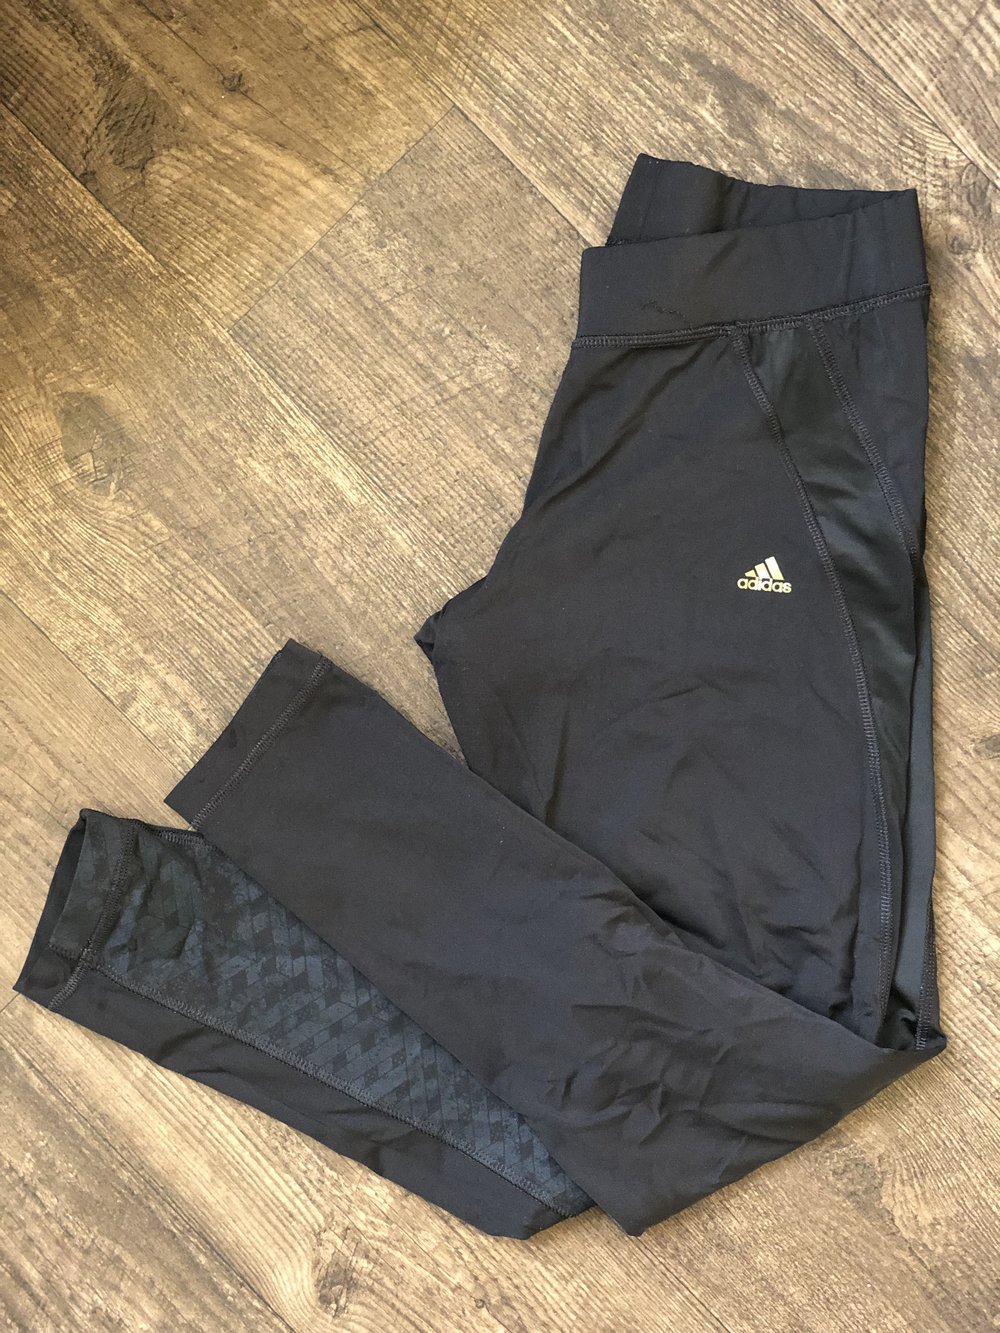 Adidas Running Tight mid rise // $30